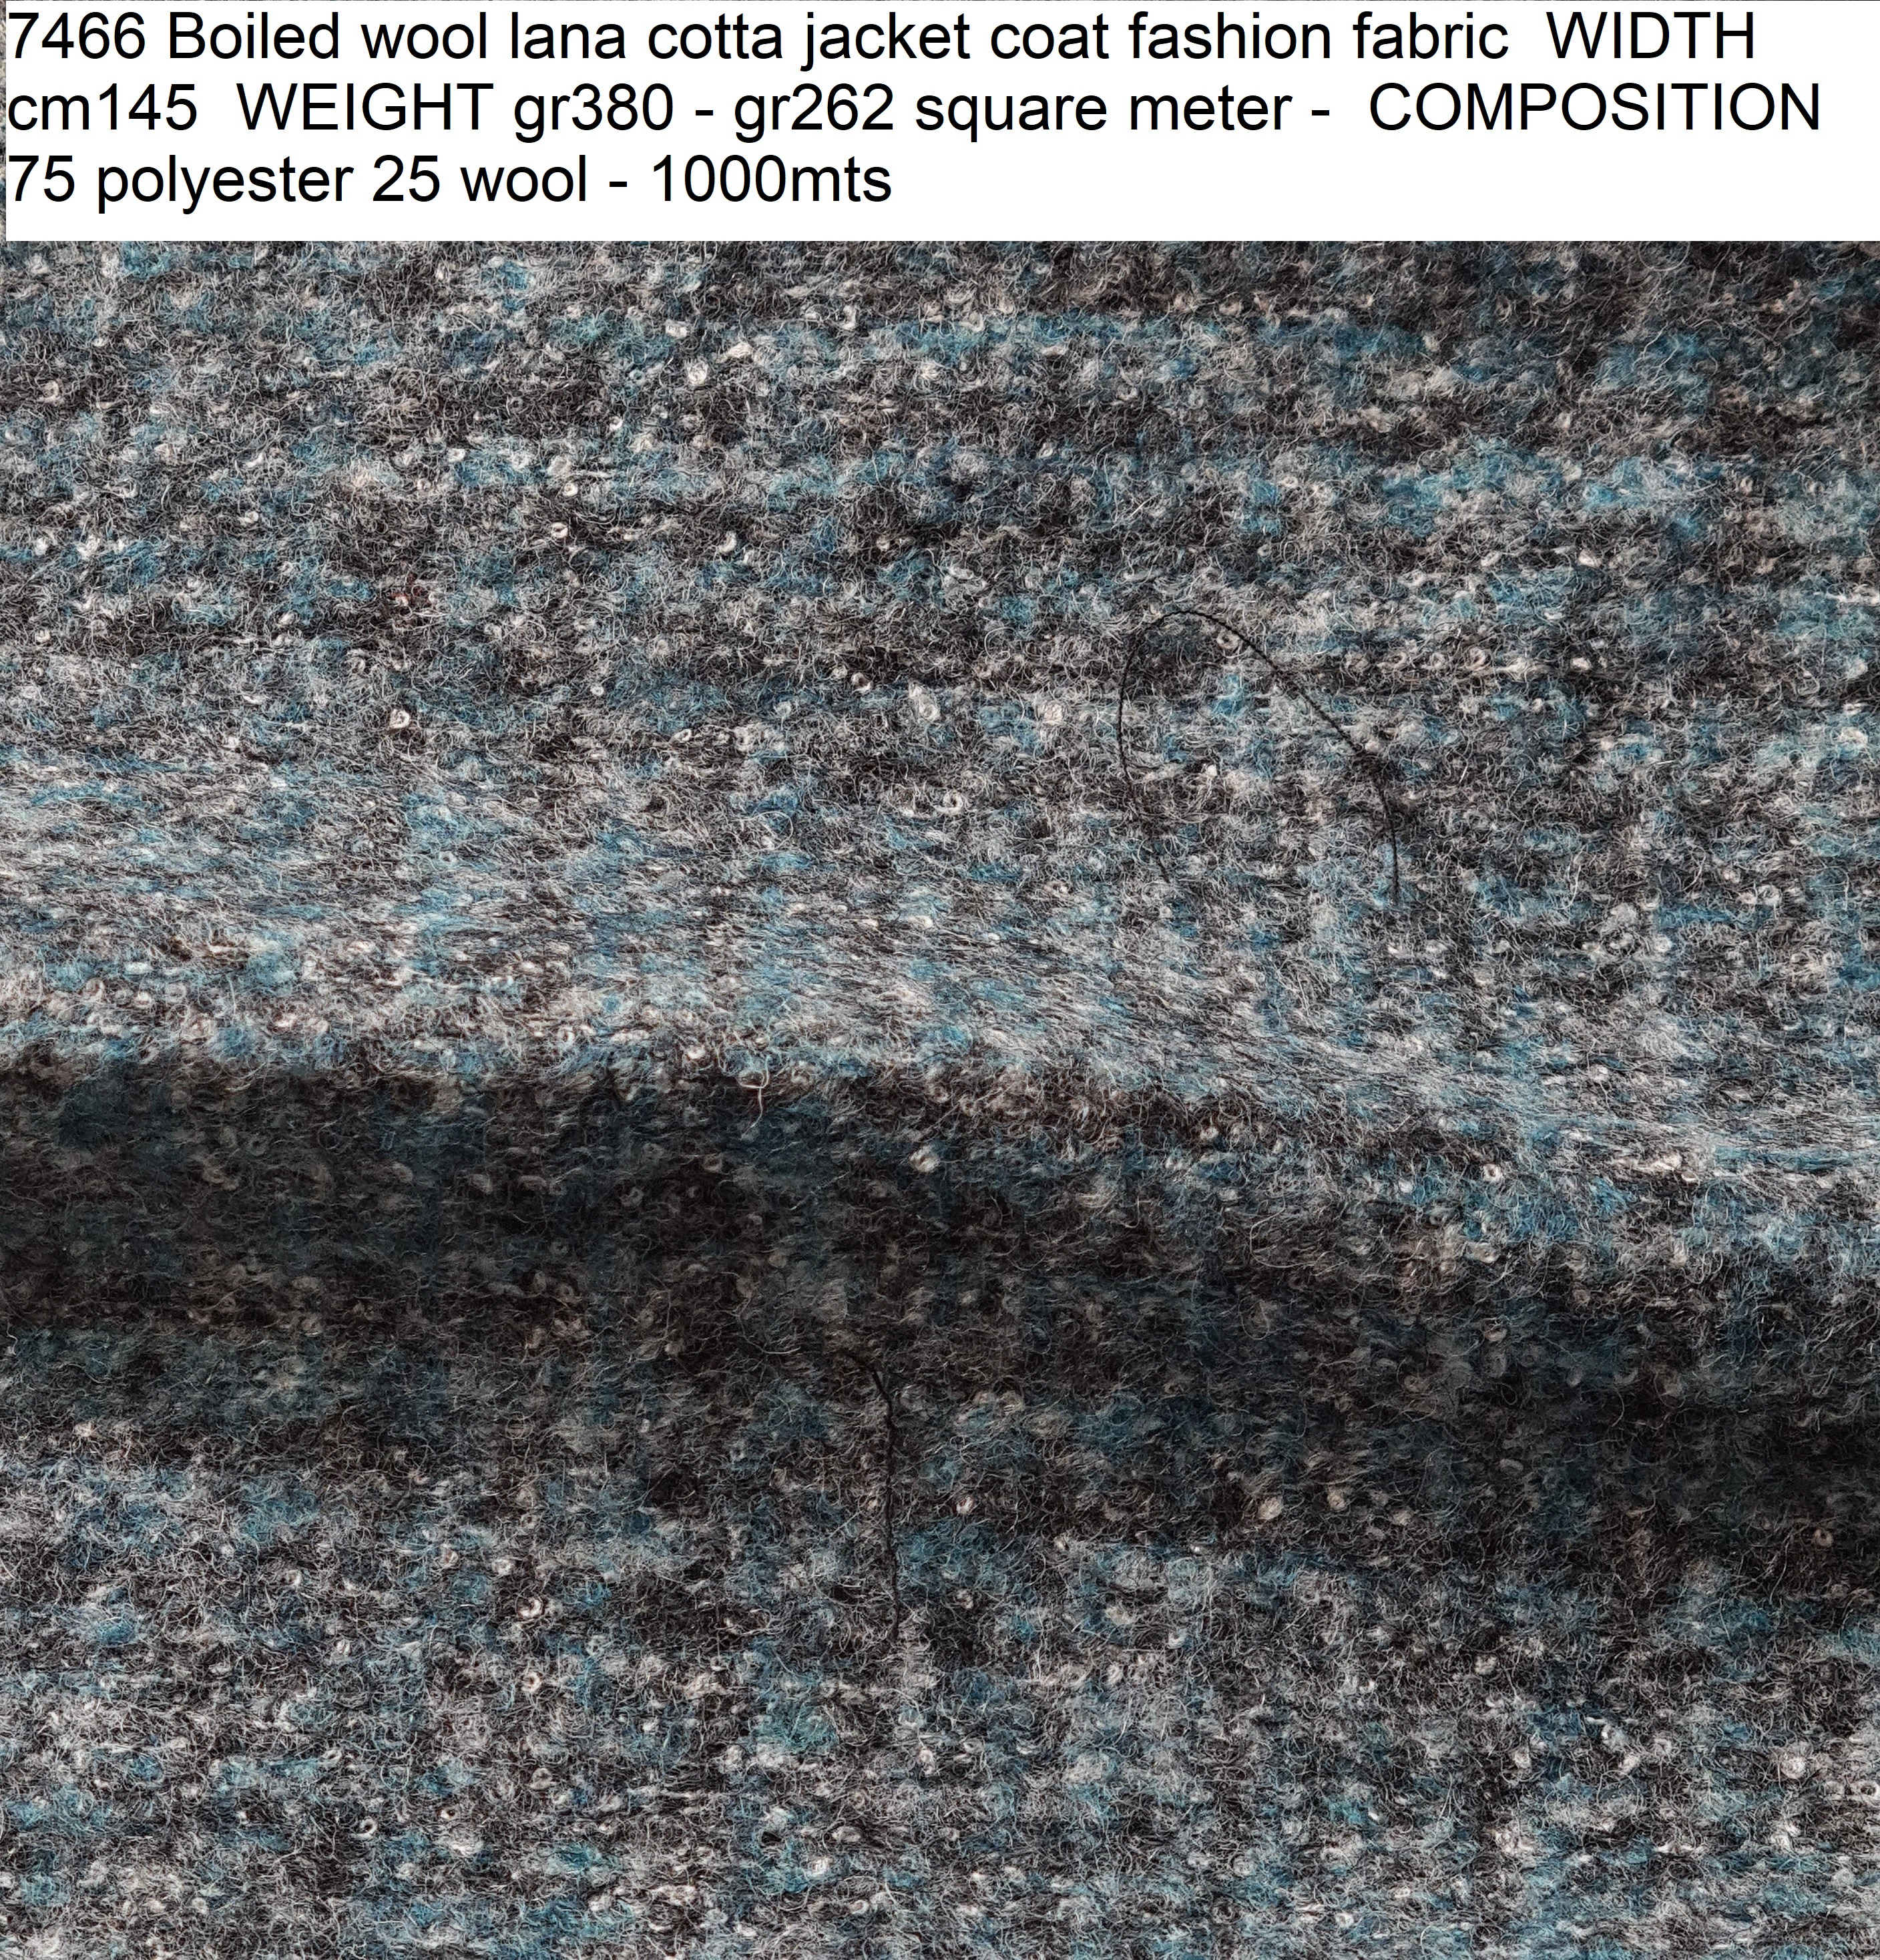 7466 Boiled wool lana cotta jacket coat fashion fabric WIDTH cm145 WEIGHT gr380 - gr262 square meter - COMPOSITION 75 polyester 25 wool - 1000mts